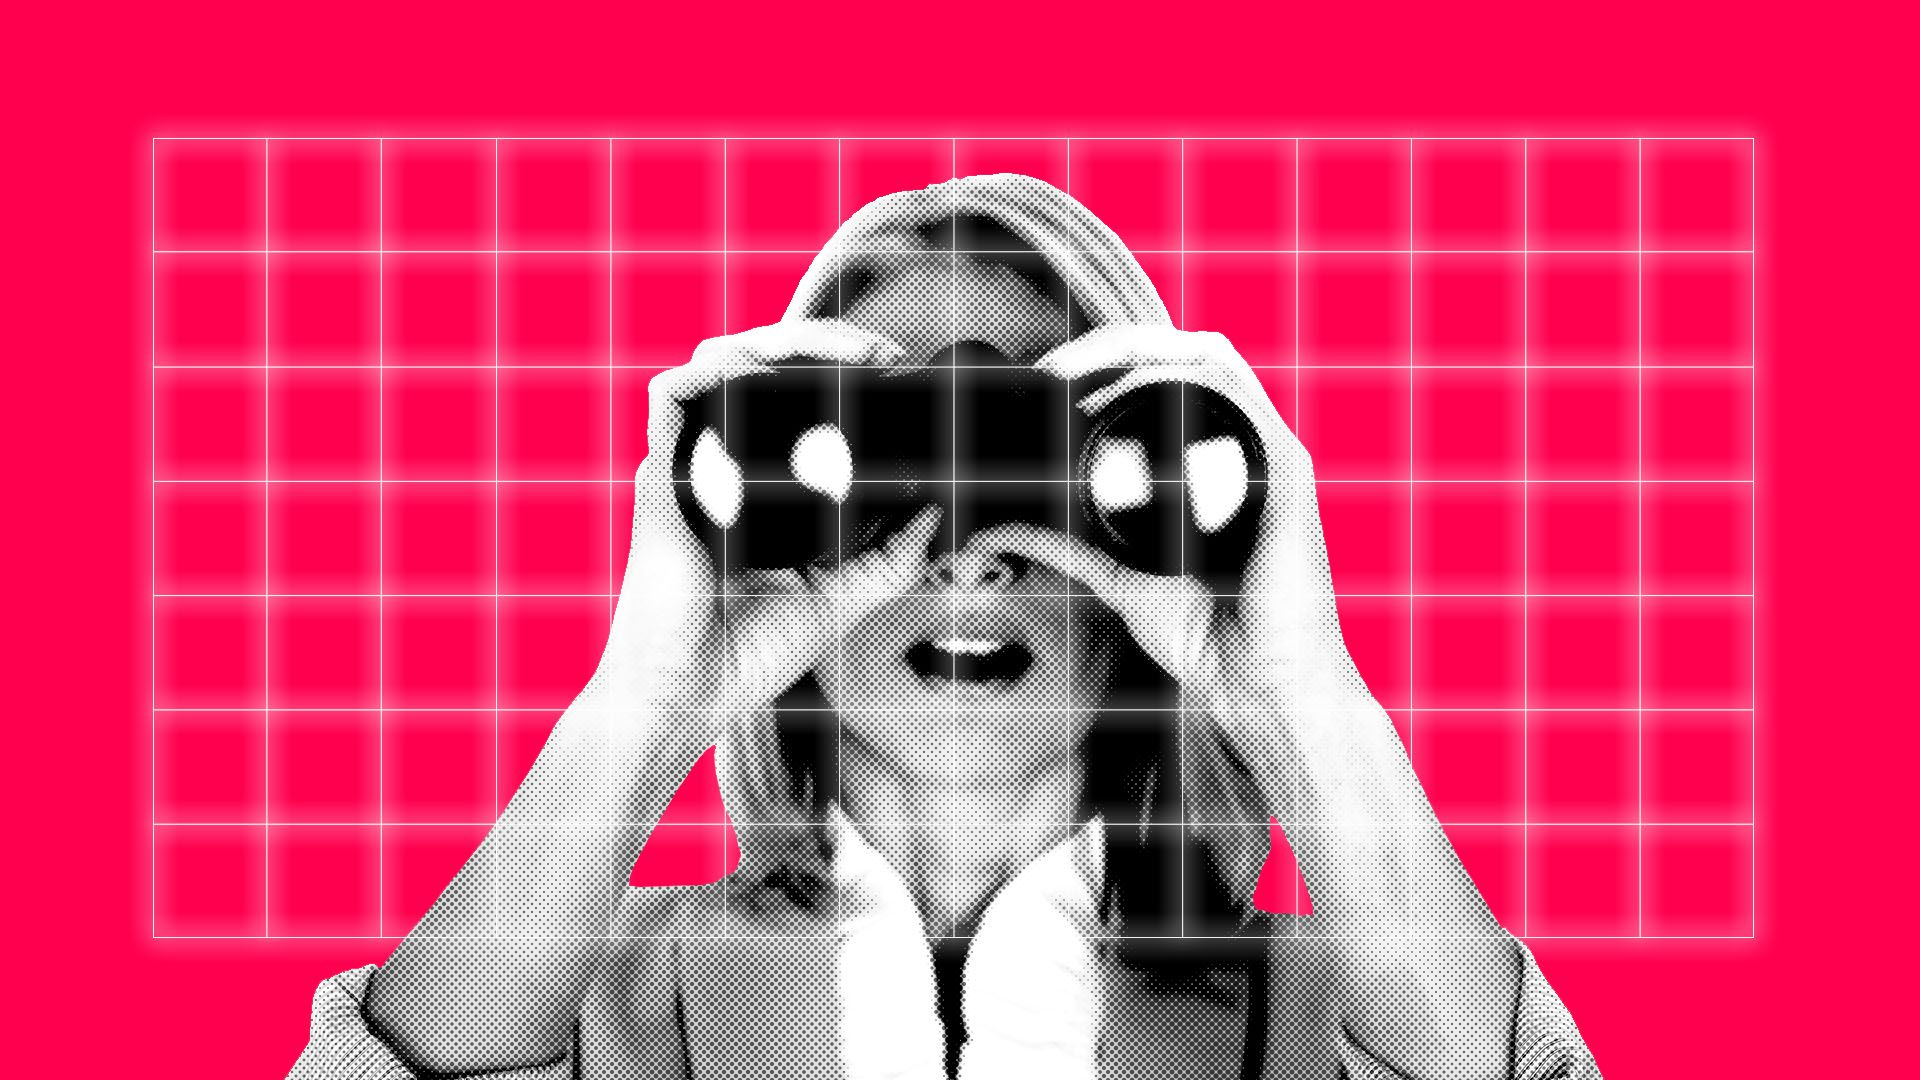 Illustration of a woman looking through binoculars through a grid